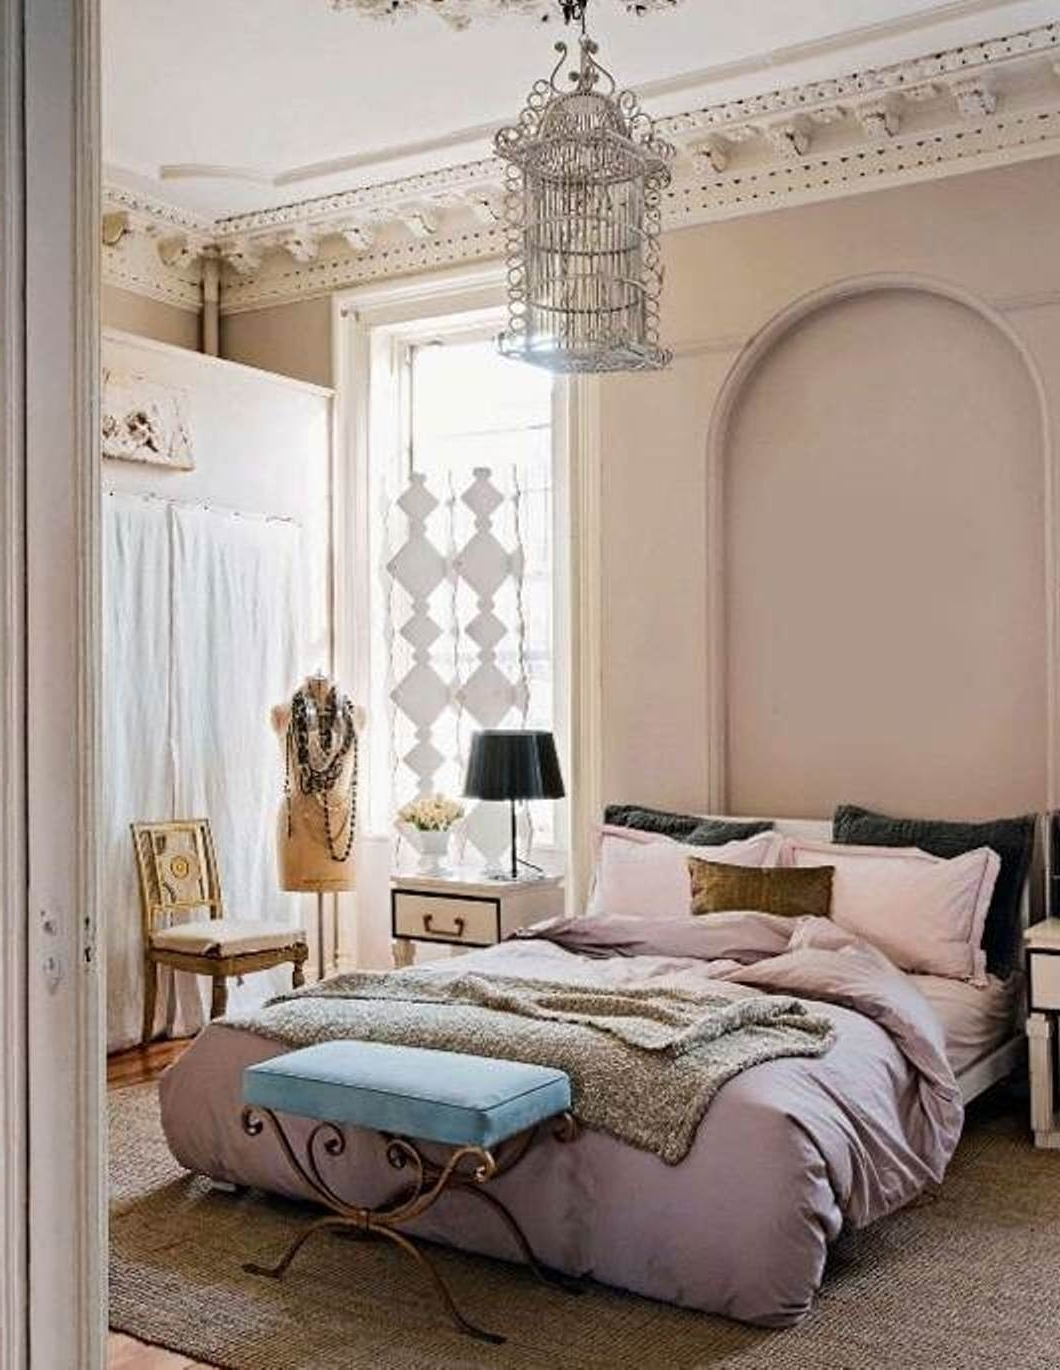 Newest Feminine Wall Art Intended For Bedroom Design: Feminine Bedding Ideas Beautiful Beds Accent (View 7 of 15)